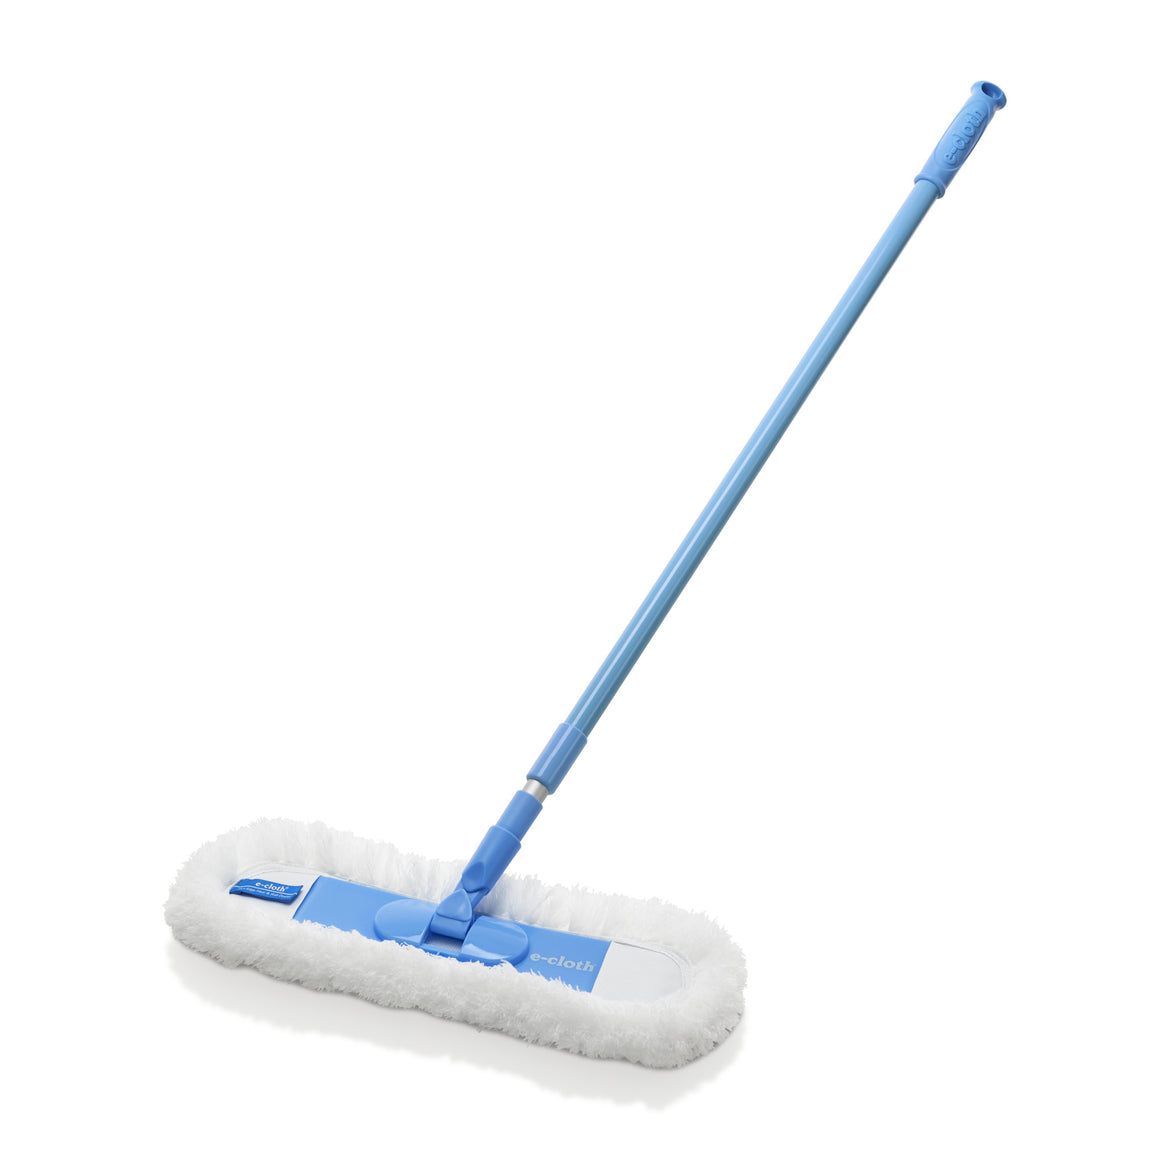 Flexi-Edge Floor & Wall Duster With Sturdy Telescoping Handle - Brilliant for Eliminating Dust, Allergens, Lint From Floors and Walls